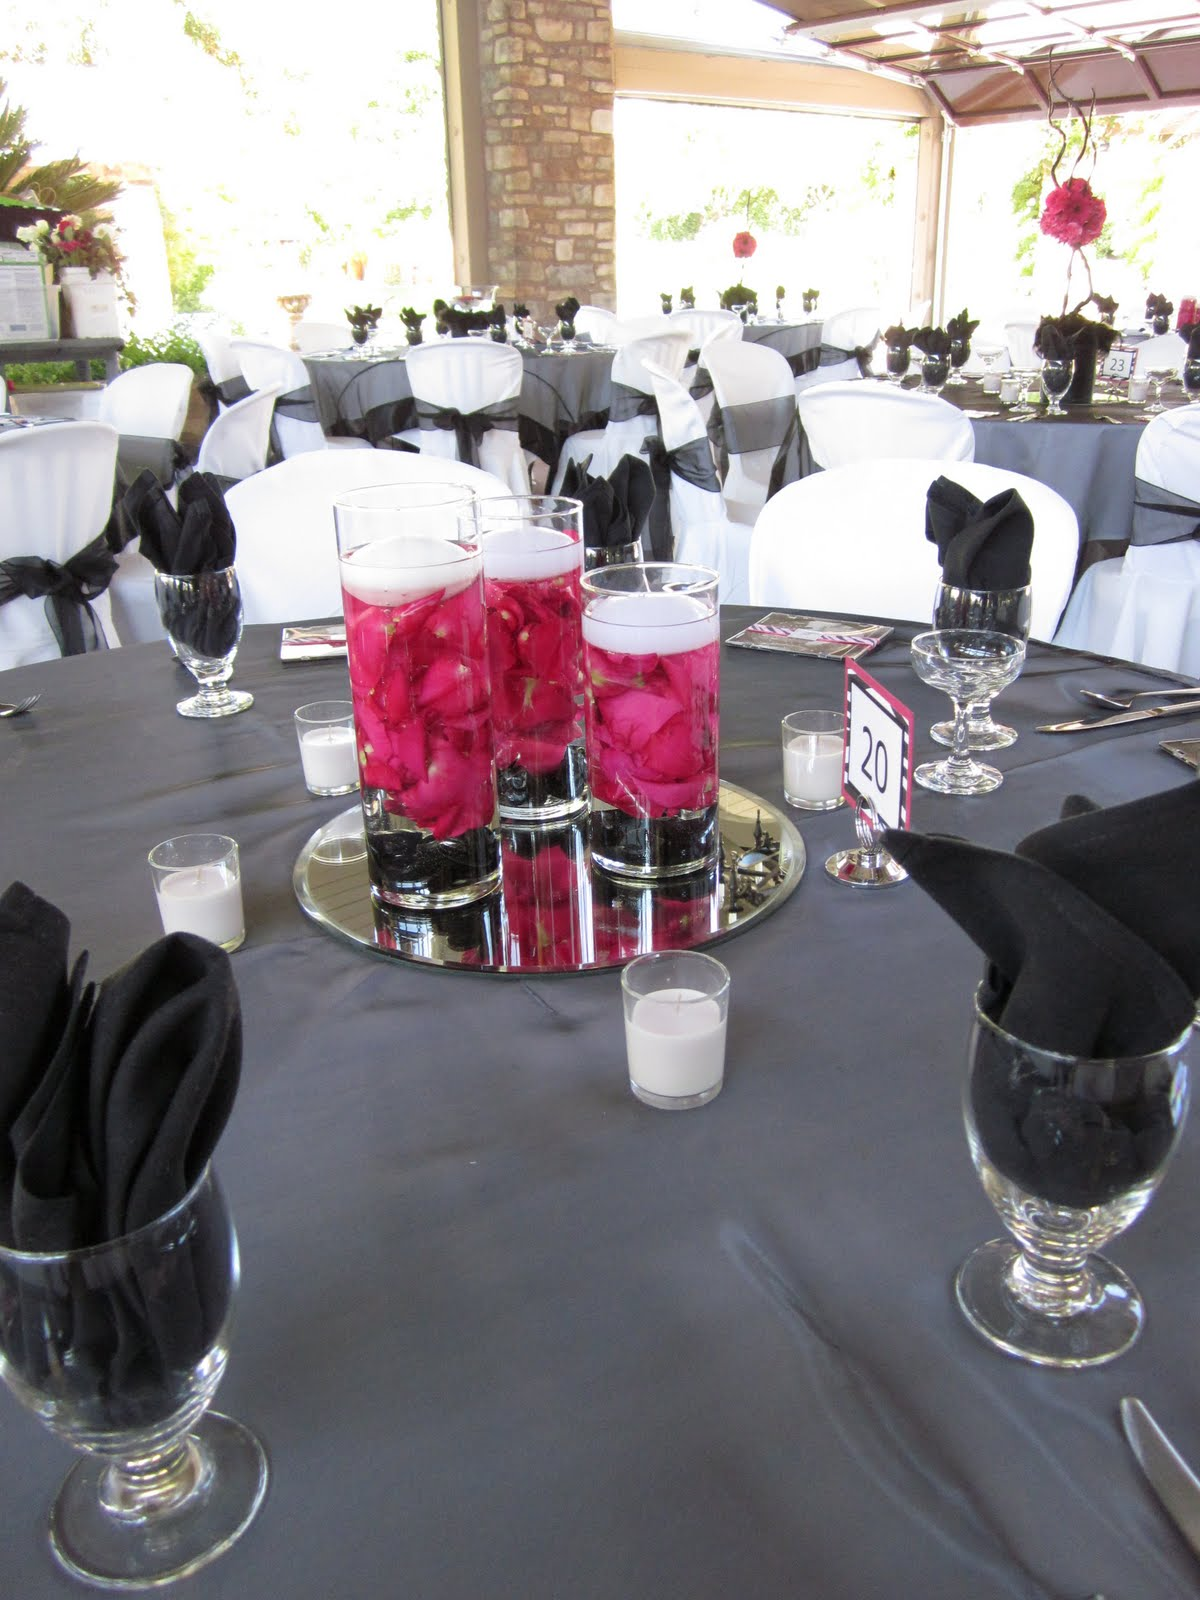 Brown bunny flowers july 17 2010 ashley and ryans wedding the other two centerpieces used our glass vases and bowls with submerged hot pink rose petals and floating candles reviewsmspy